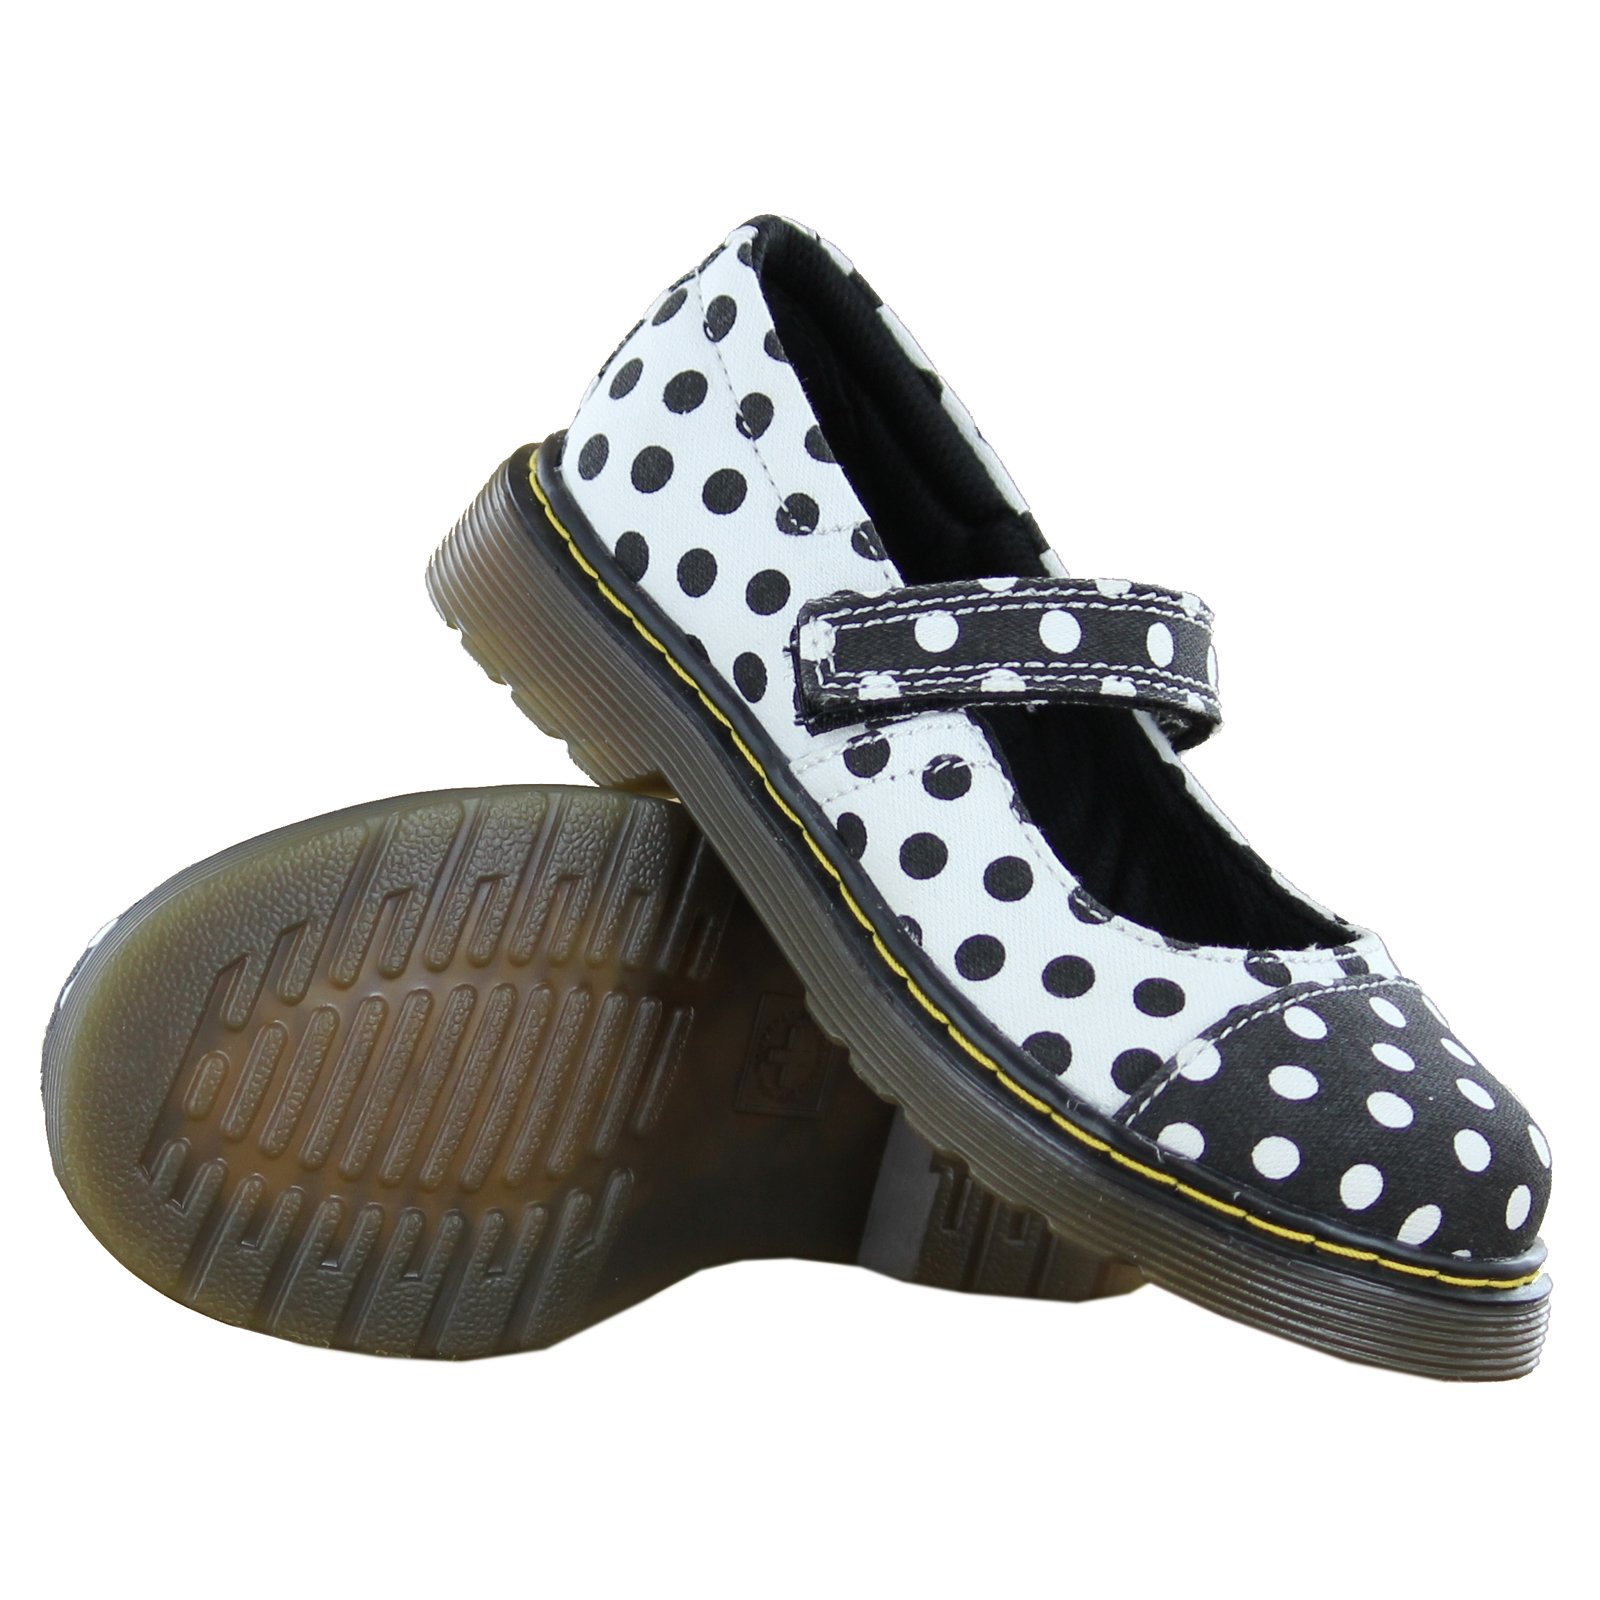 Dr. Martens Kid's Collection Girl's Bijou Toe Cap Mary Jane (Little Kid) Black+White/White+Black Dots Fine Canvas Flat 13 UK (1 US Little Kid) M by Dr. Martens (Image #5)